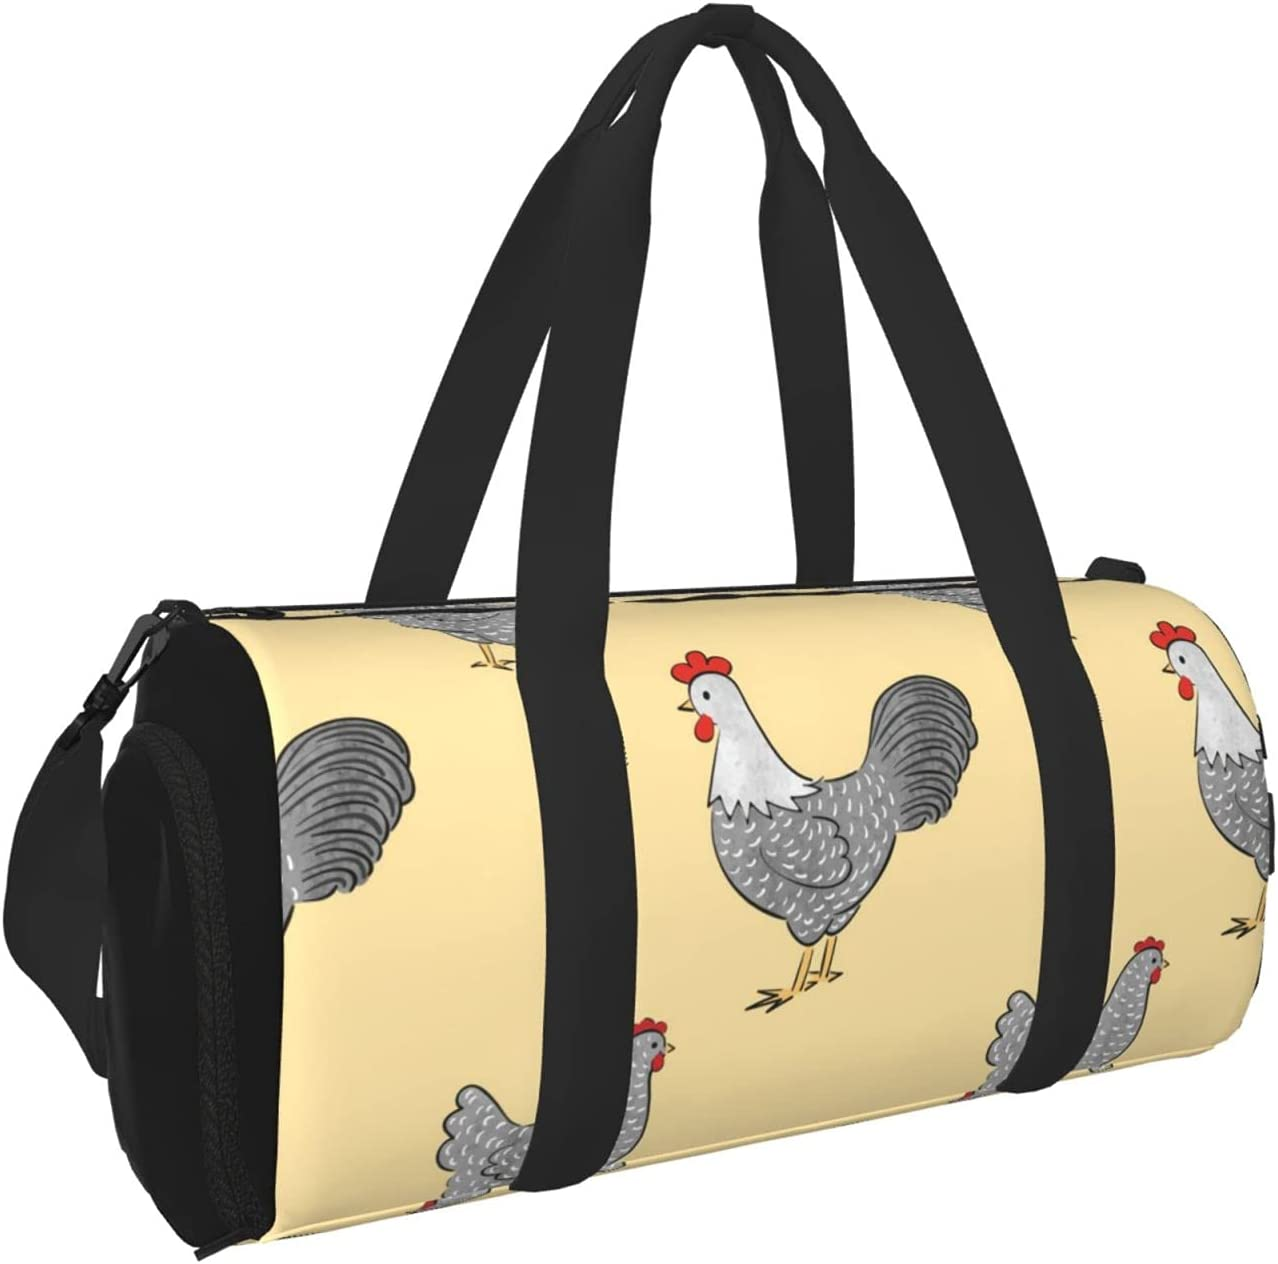 Timeergy Chicken Sales of SALE items Quantity limited from new works Pattern Gym Bag Travel Lug Duffel Carry On Bags